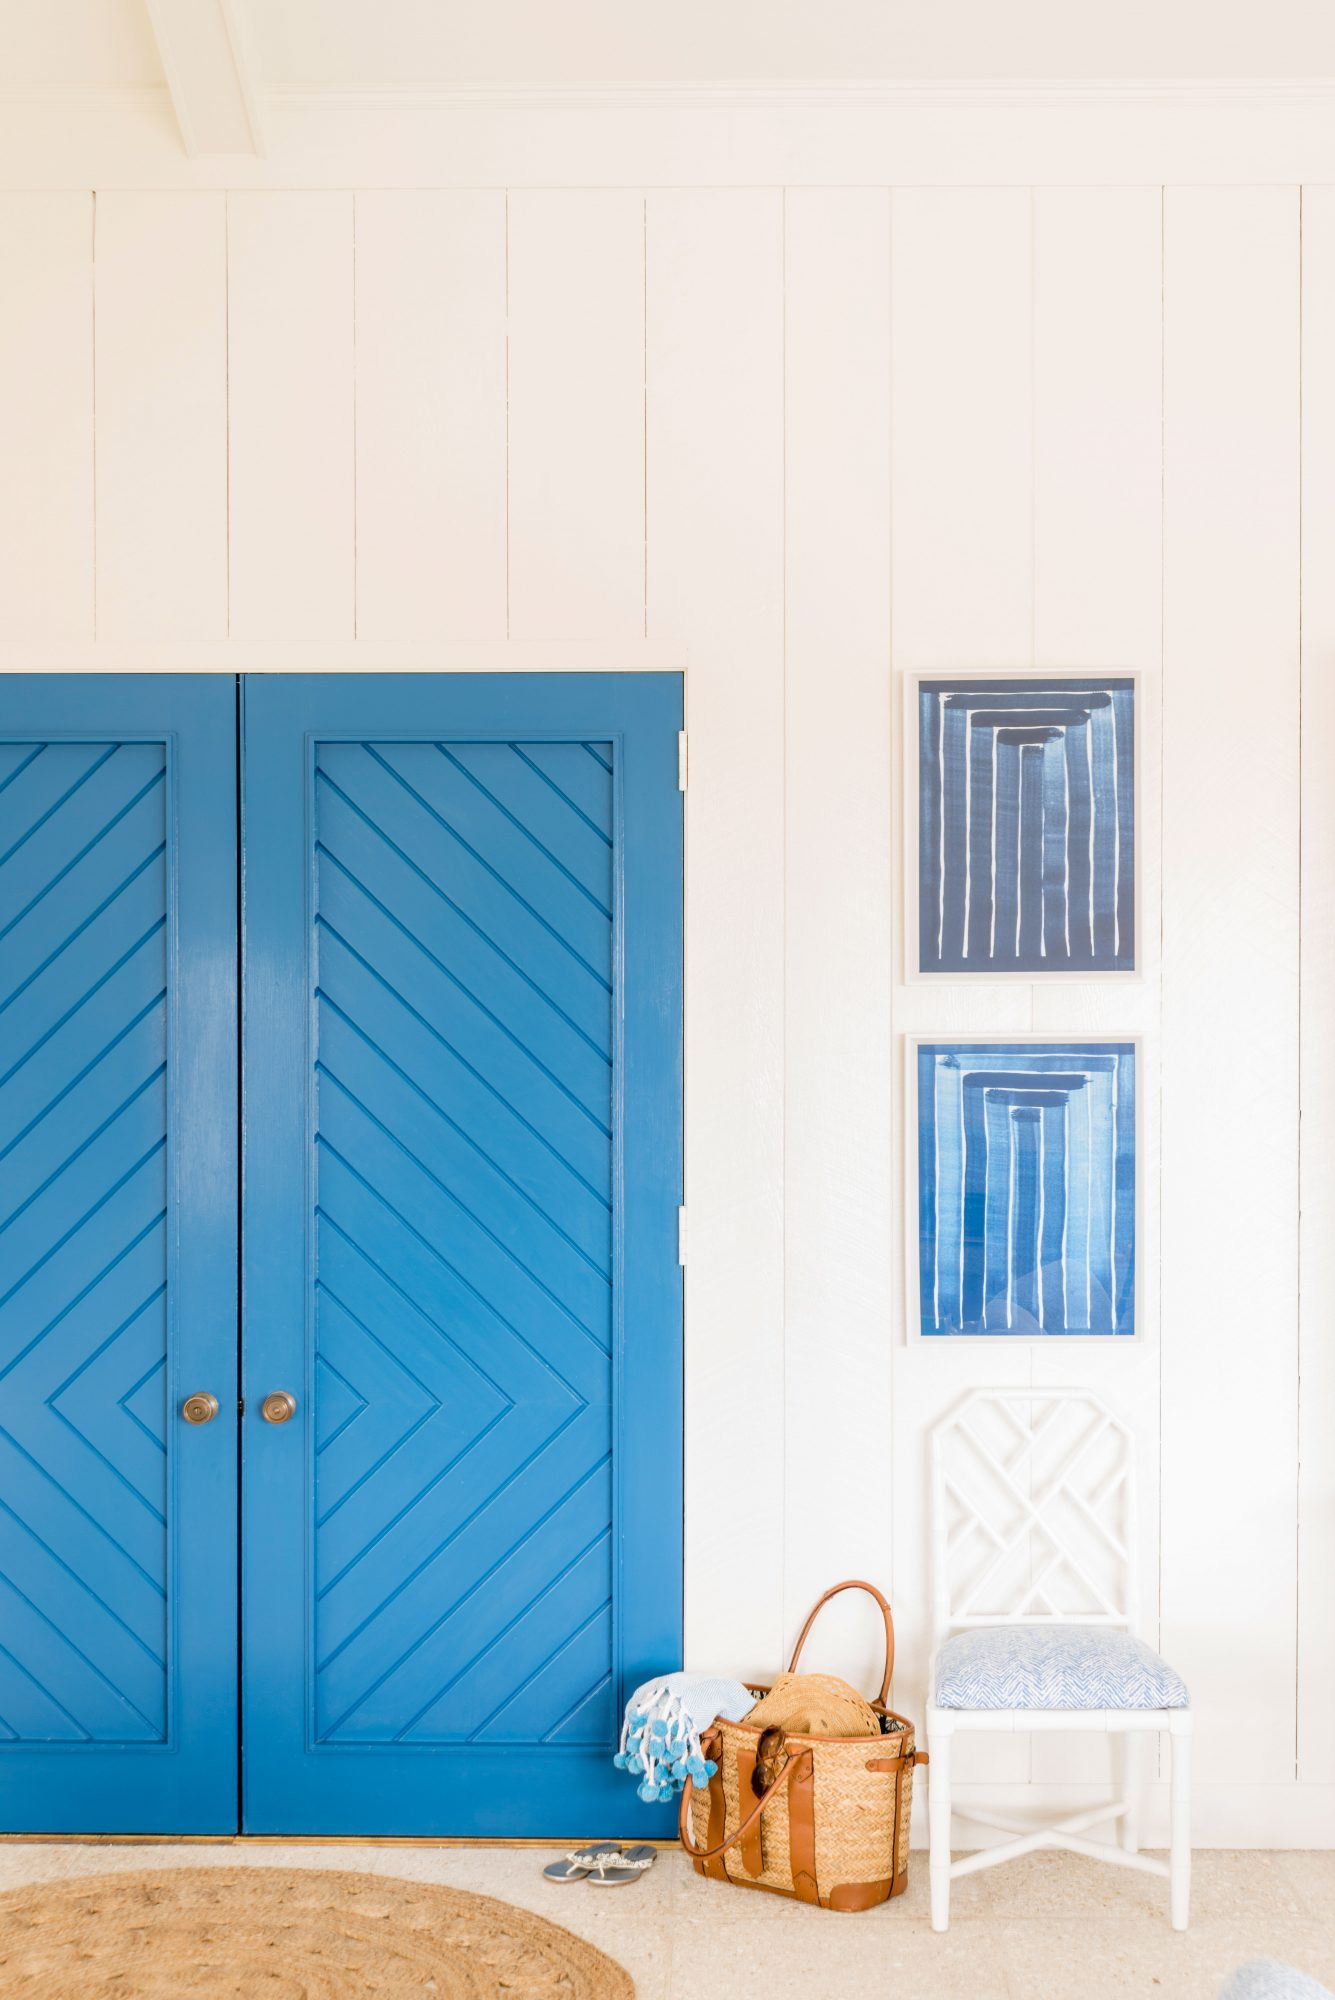 "Get the Blues: Blueberry by Benjamin Moore                                       The sea's preeminent hue shines on its own, but when it's paired with its super soul mate (white!), blue really soars. Designer Meg Braff spotlighted the dynamic duo by painting the patterned double doors in this Sea Island, Georgia, home an intense, saturated shade of blue. ""The contrast with the entry's bright white walls is beautiful, almost Mediterranean in style,"" notes Braff."